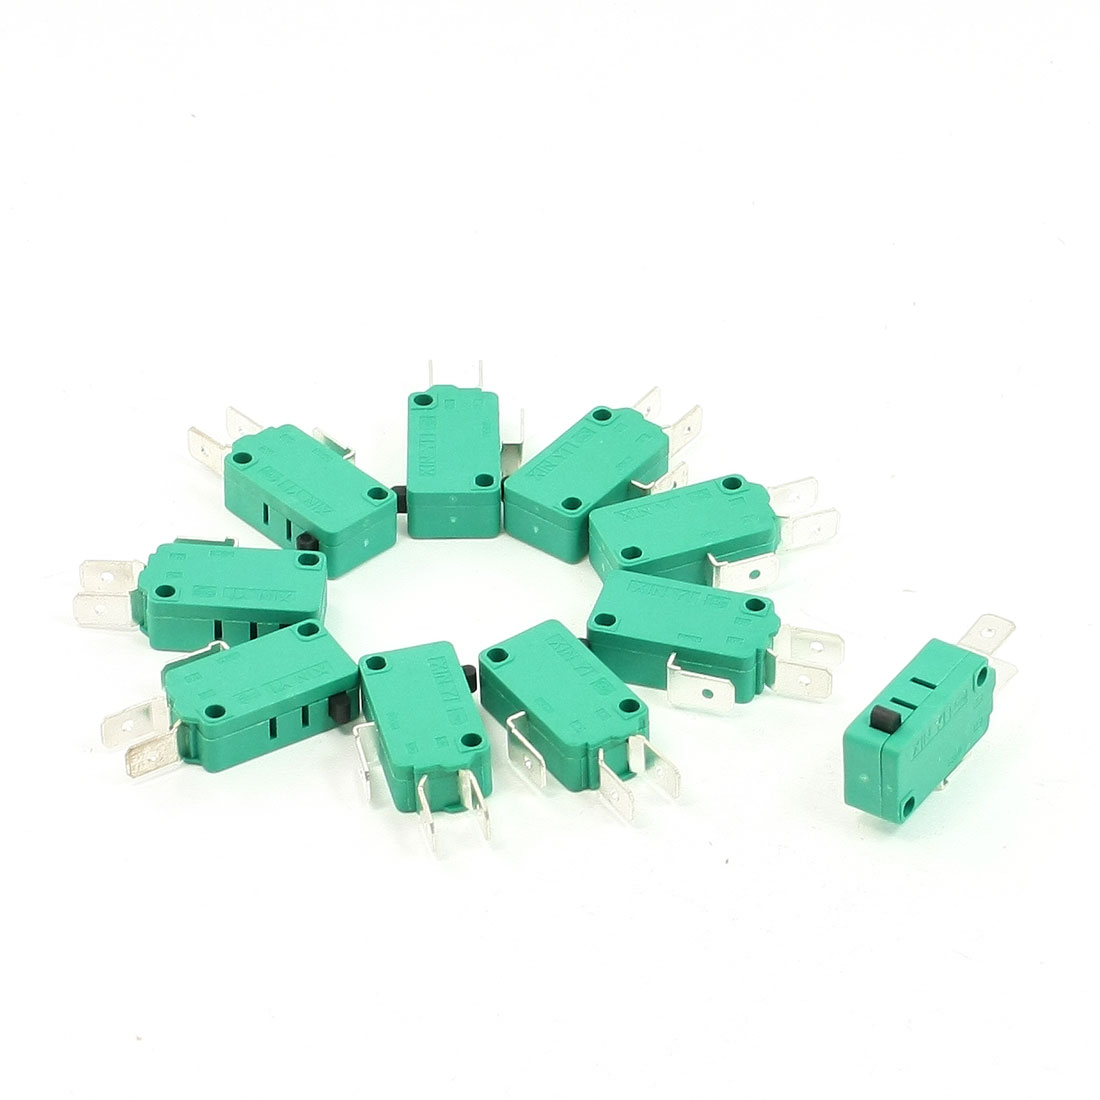 10 Pcs AC 250V 16A SPDT 3 Terminals Momentary Push Button Micro Switch Green